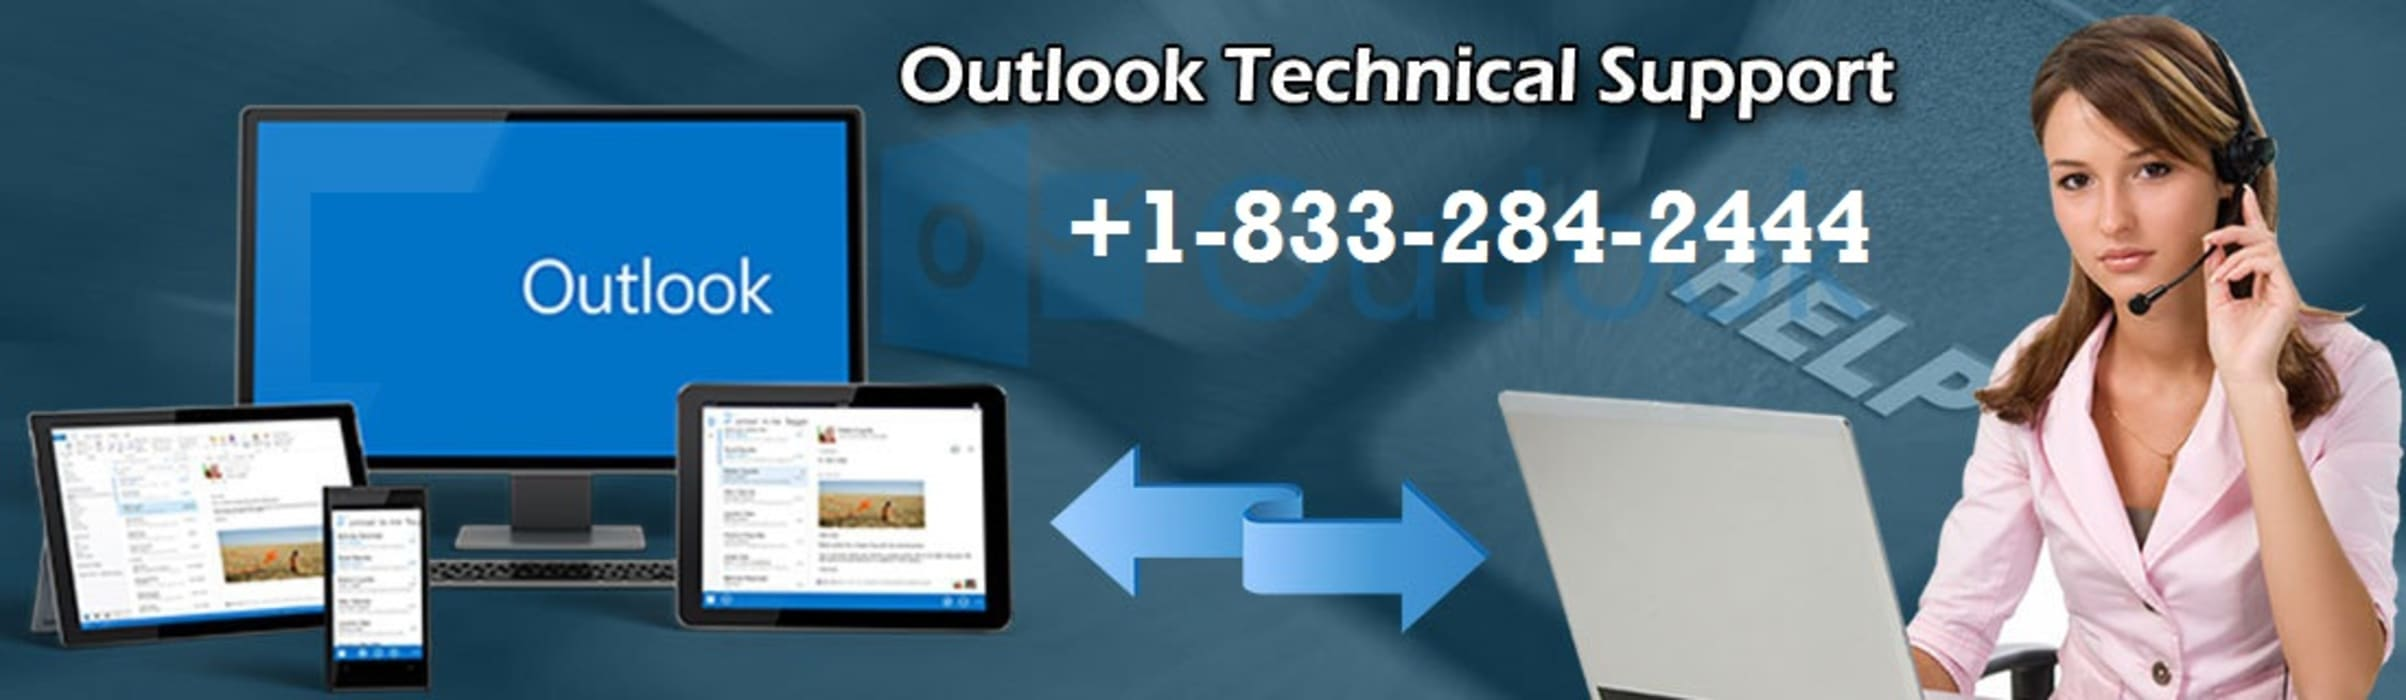 For Resolving Errors 1-(833)284-2444 Outlook Customer Service by anabelsmith.988